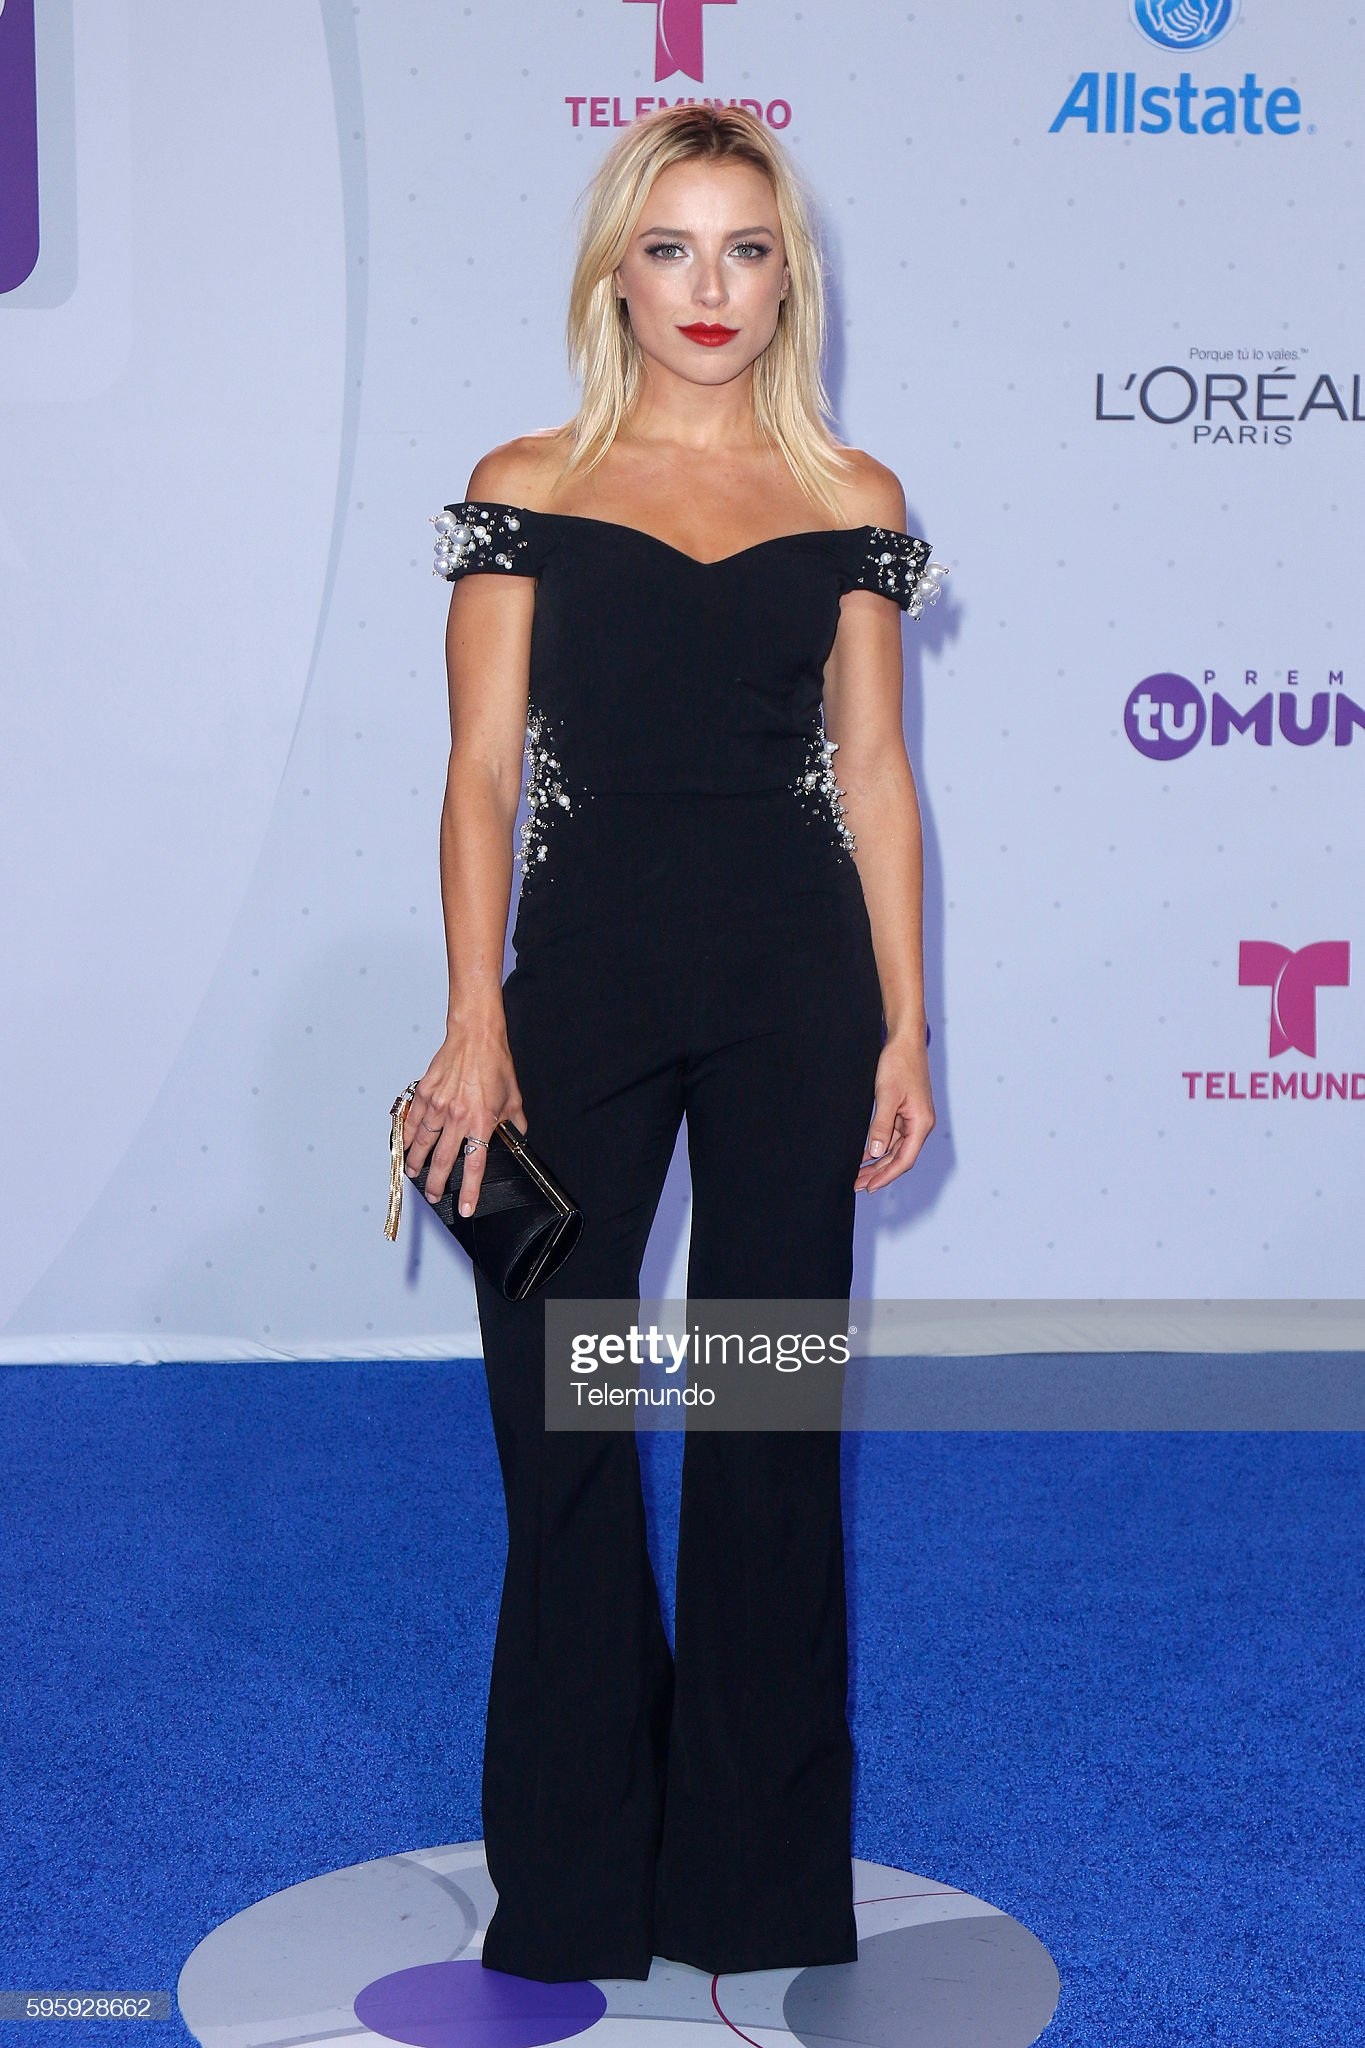 https://media.gettyimages.com/photos/blue-carpet-pictured-marcela-guirado-arrives-at-the-2016-premios-tu-picture-id595928662?s=2048x2048